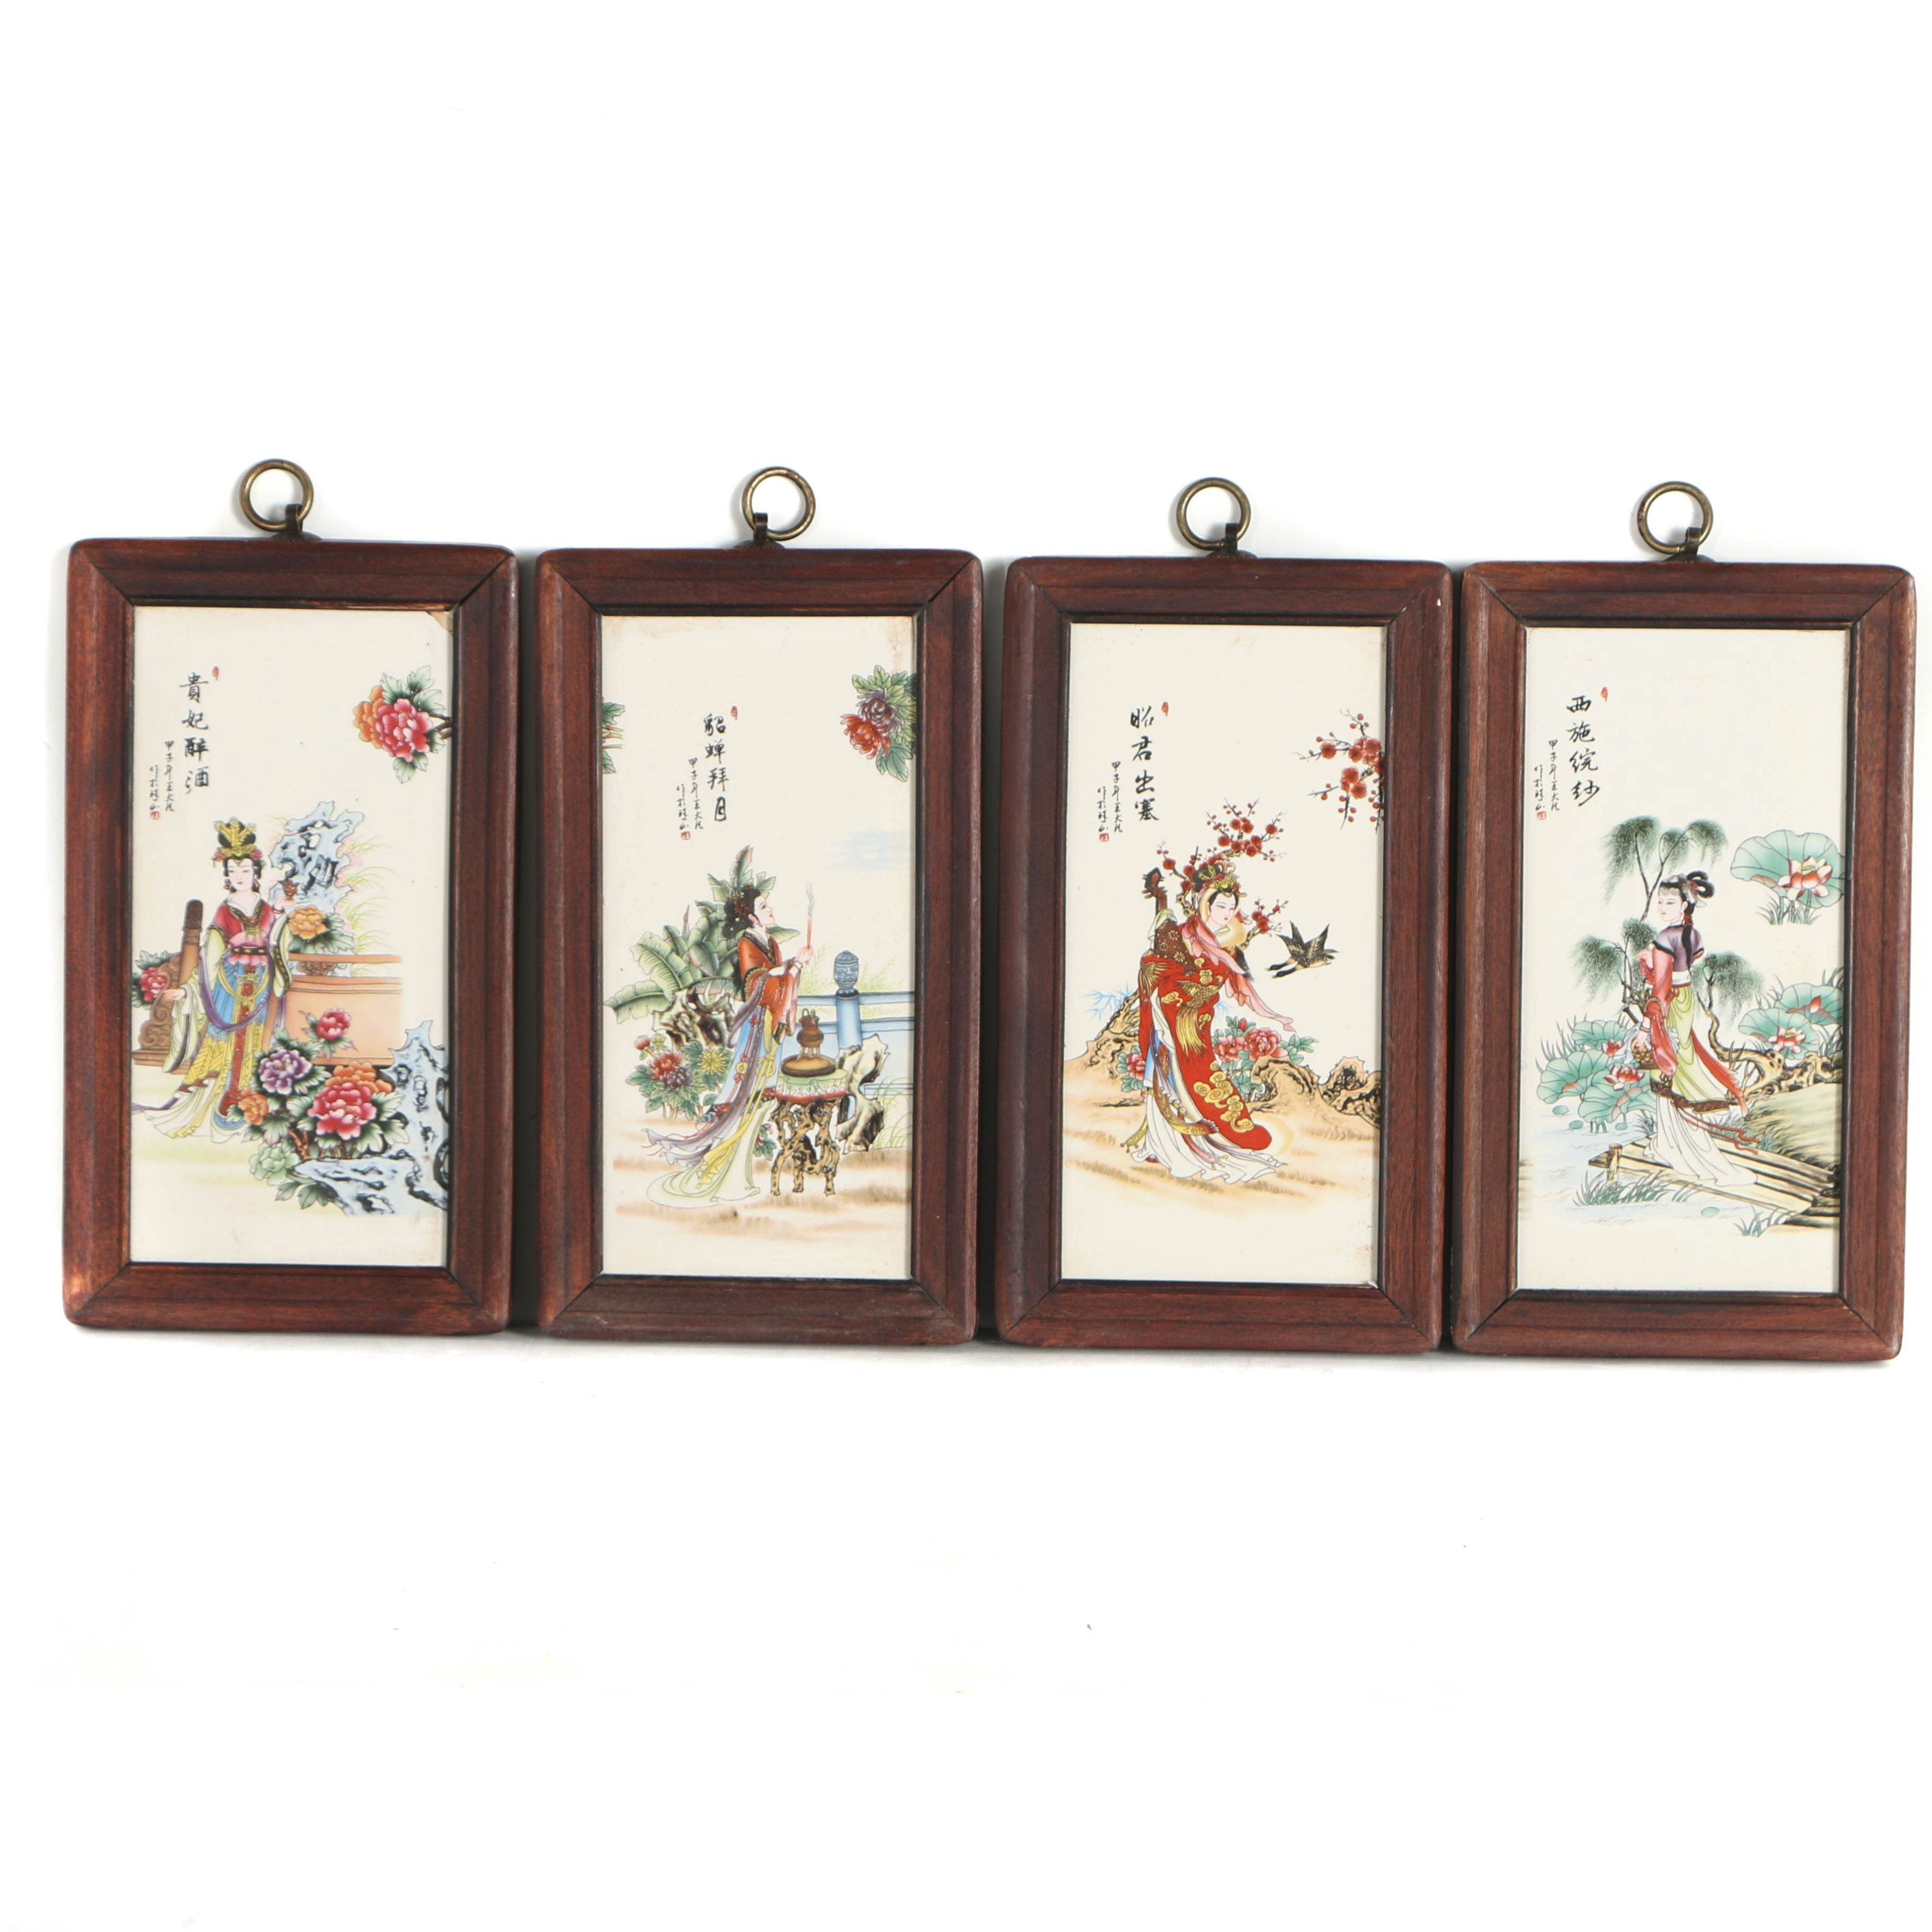 Four Chinese Embellished Offset Lithographs on Tile